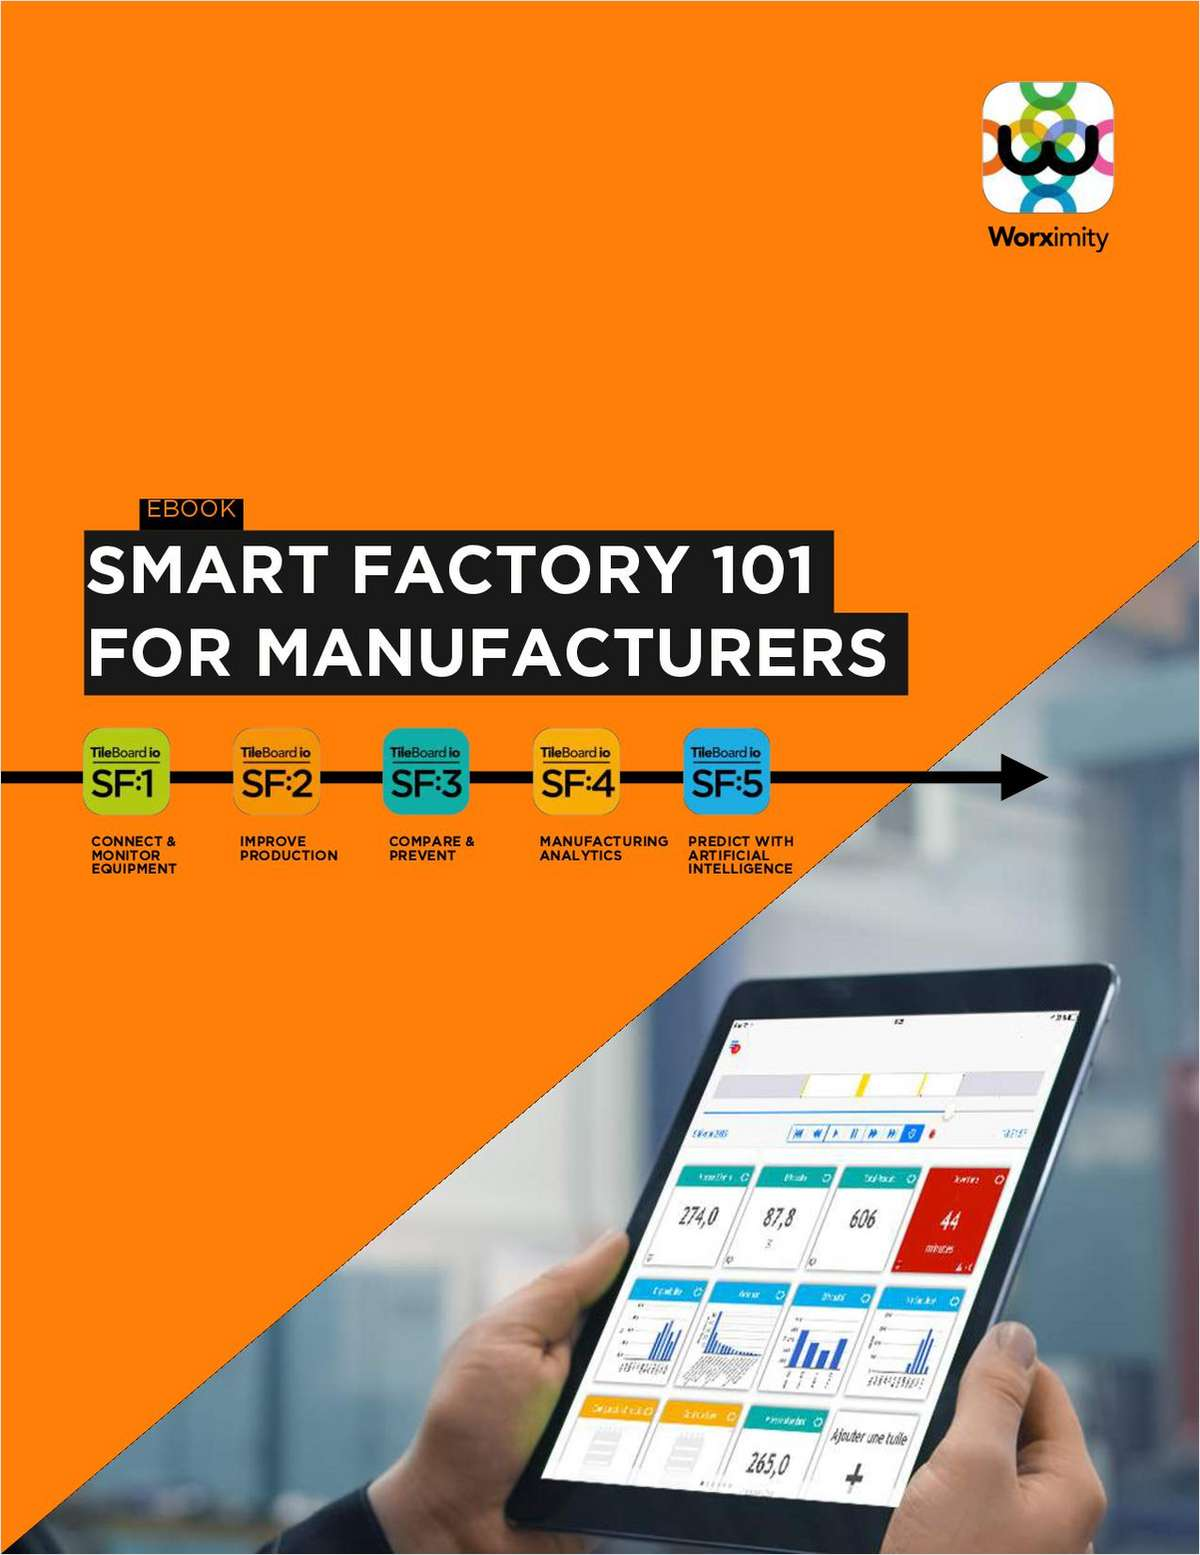 Smart Factory 101 Ebook for Food & Beverage, CPG, Plastics and Packaging Manufacturers